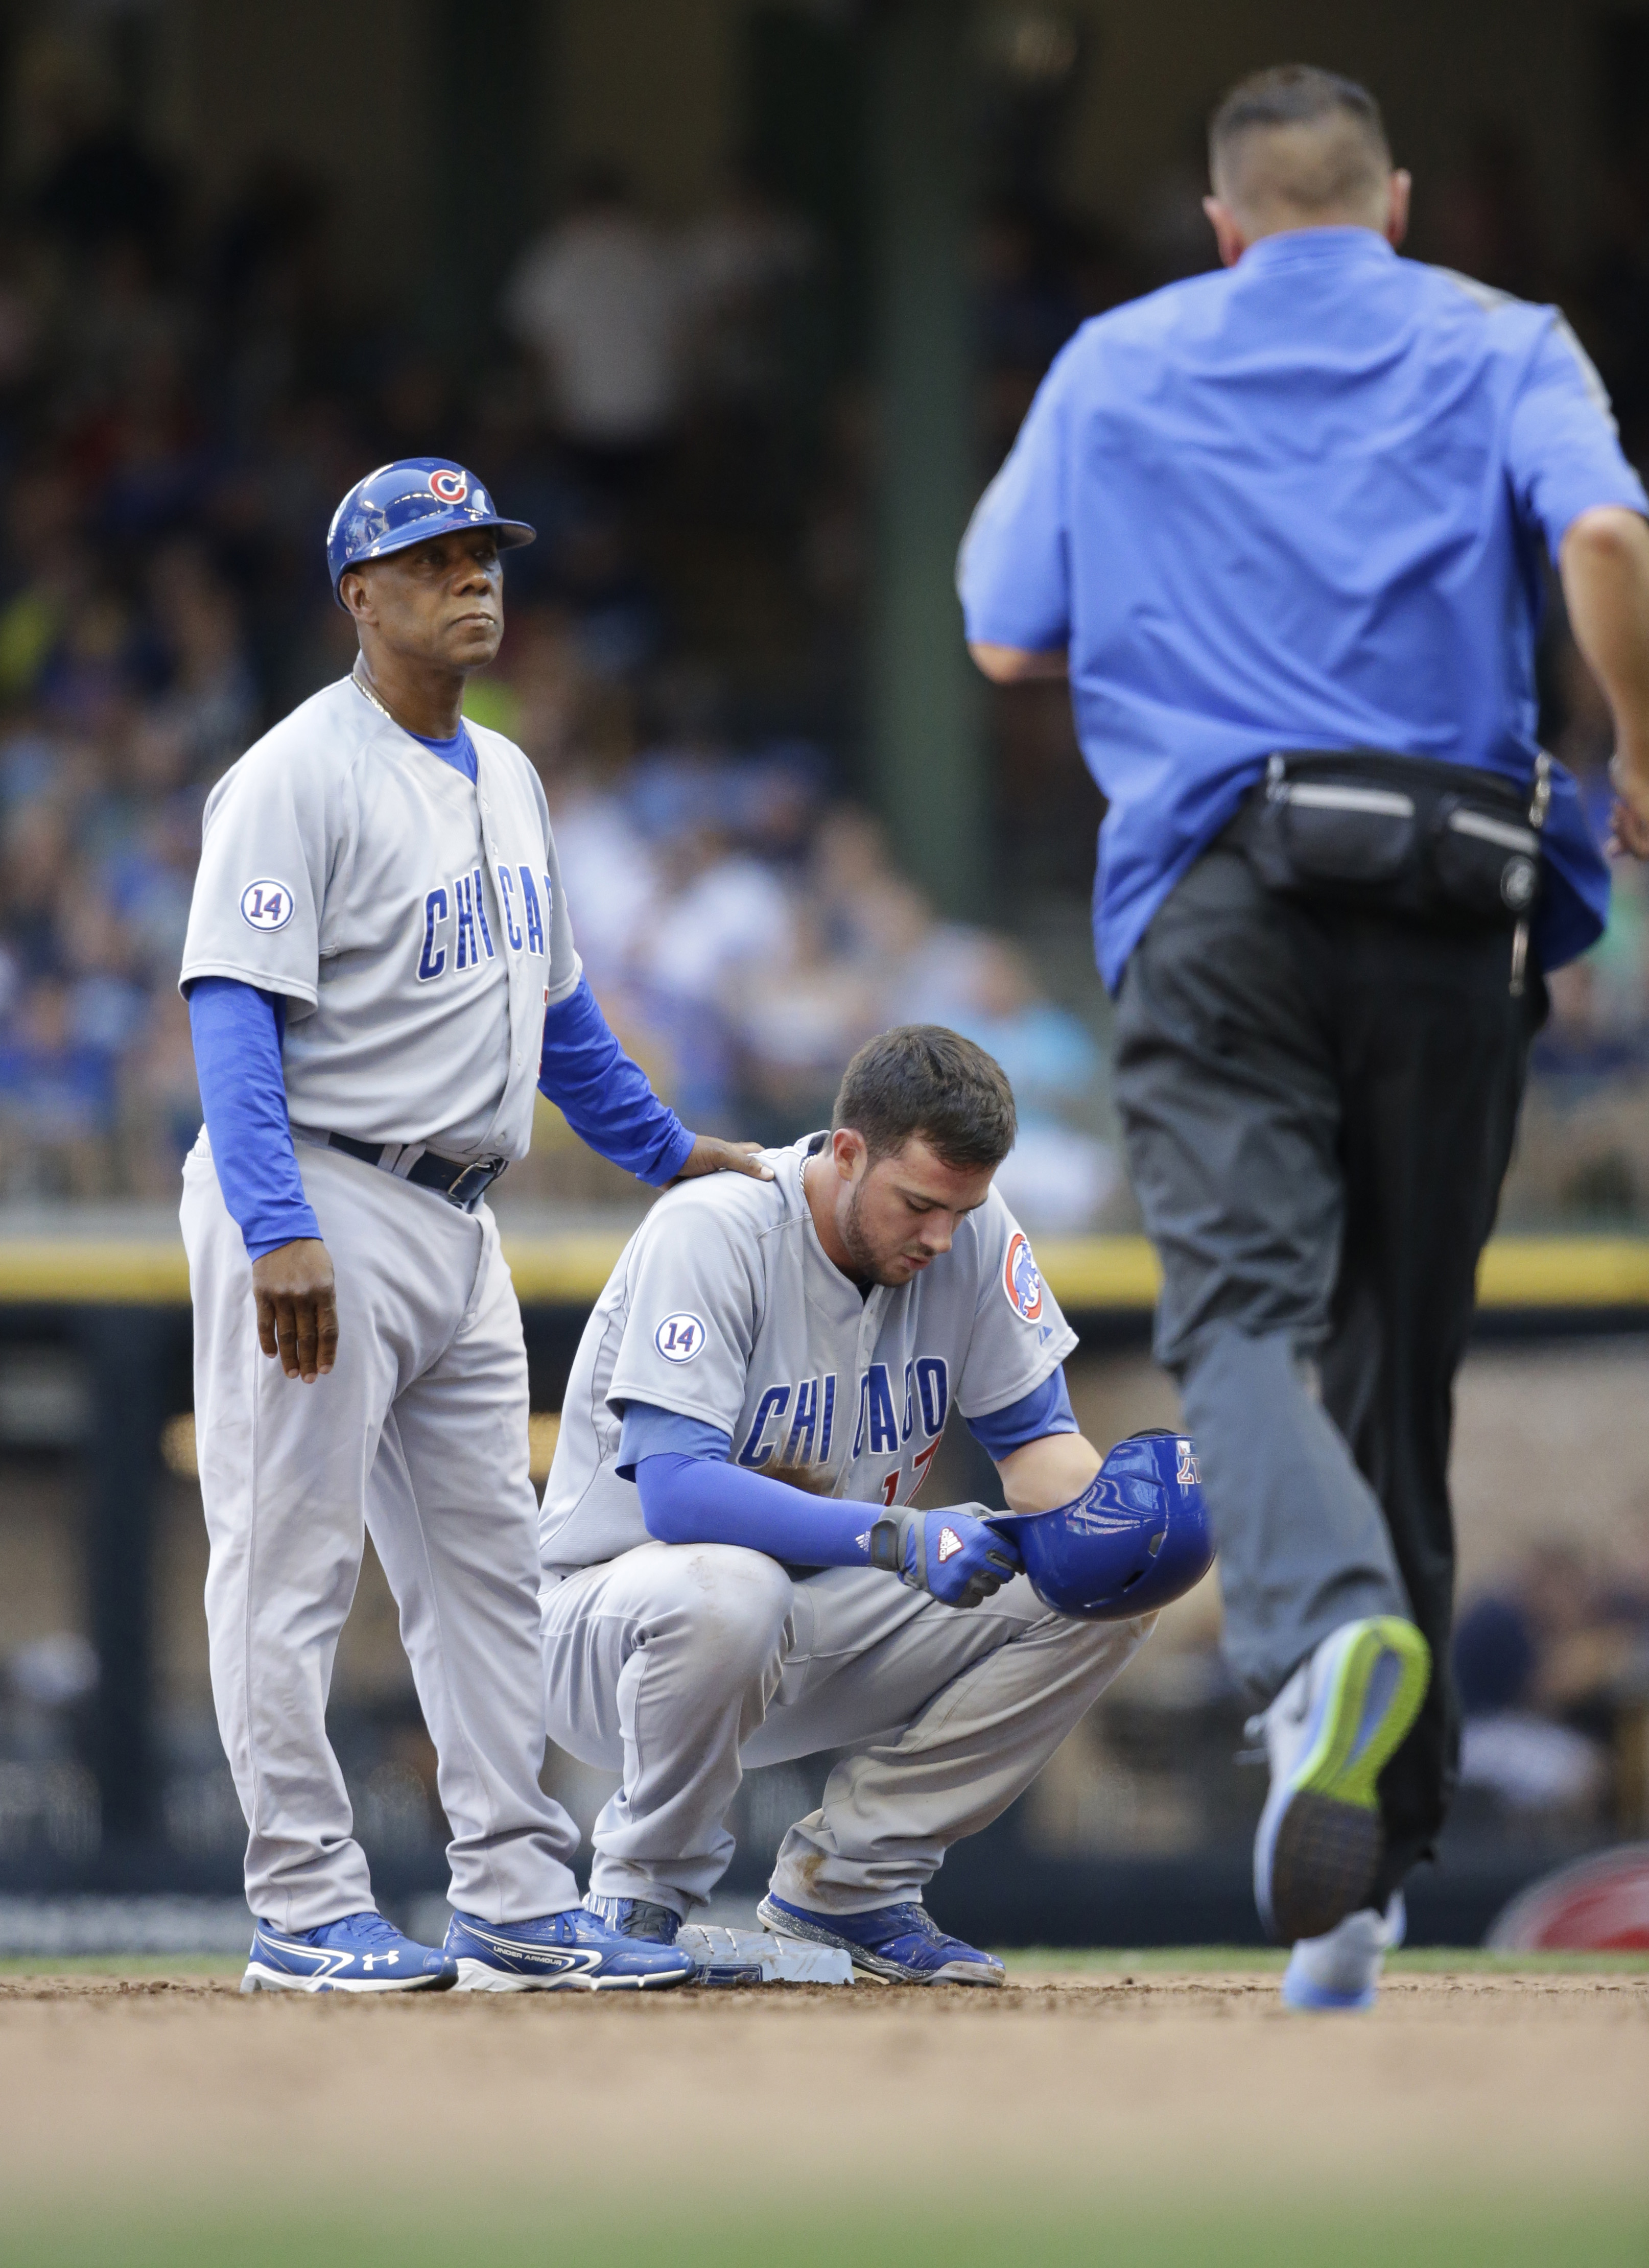 Chicago Cubs' Kris Bryant, center, reacts at second base with third base coach Gary Jones, left, as a trainer runs to his aid during the fifth inning of a baseball game against the Milwaukee Brewers, Sunday, Aug. 2, 2015, in Milwaukee. Bryant was hurt on